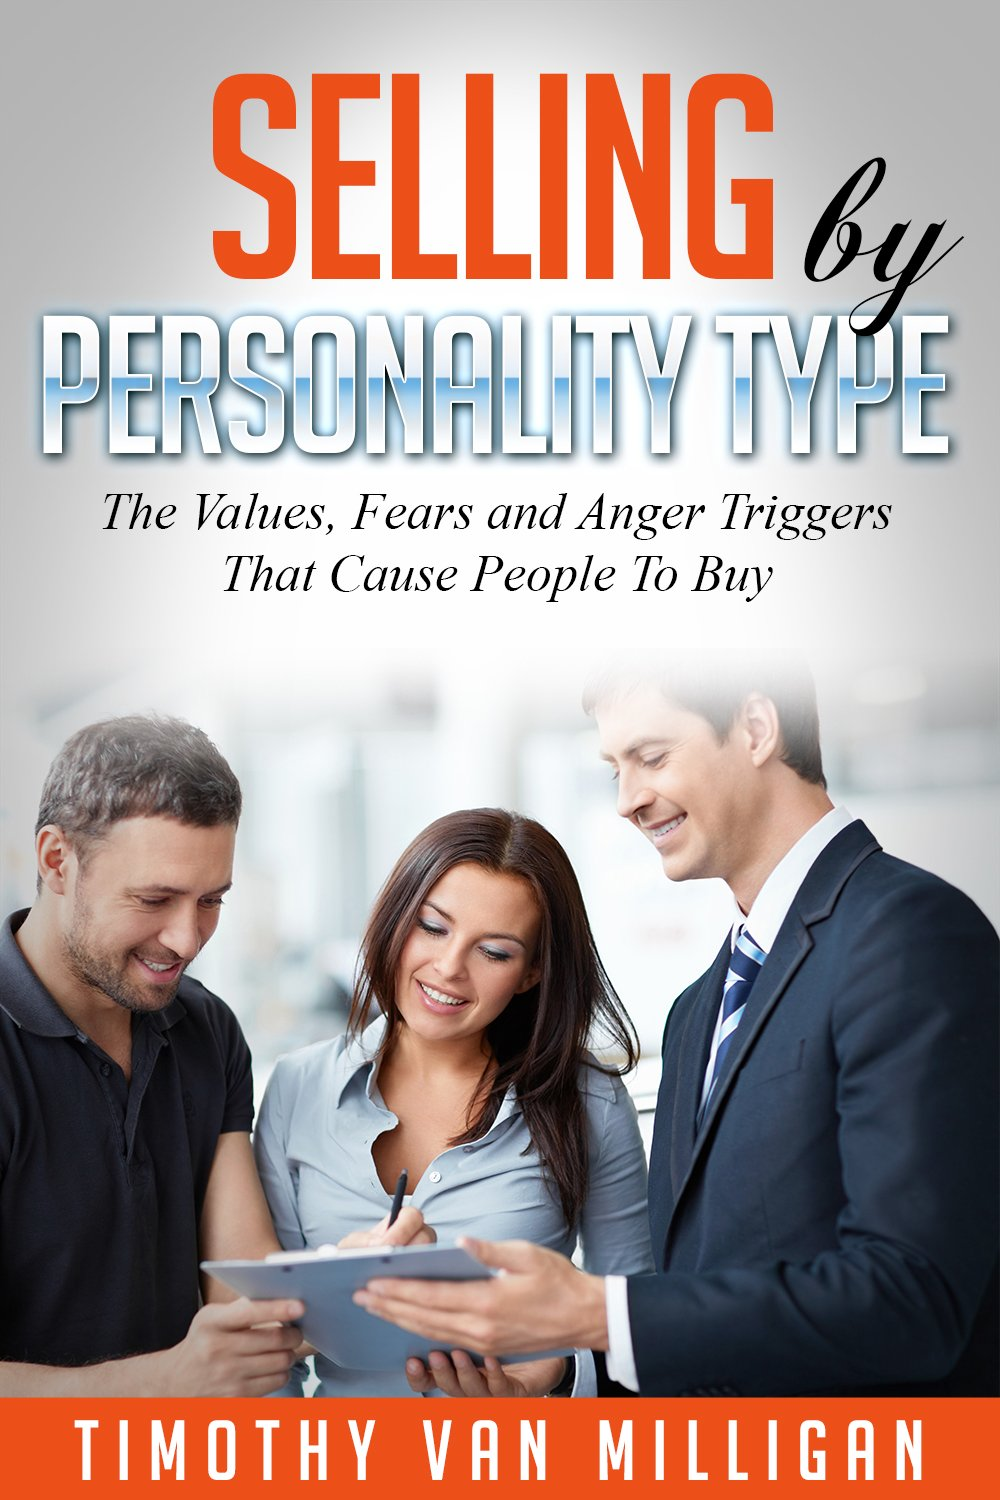 Selling by Personality Type: The Values, Fears and Anger Triggers That Cause People To Buy